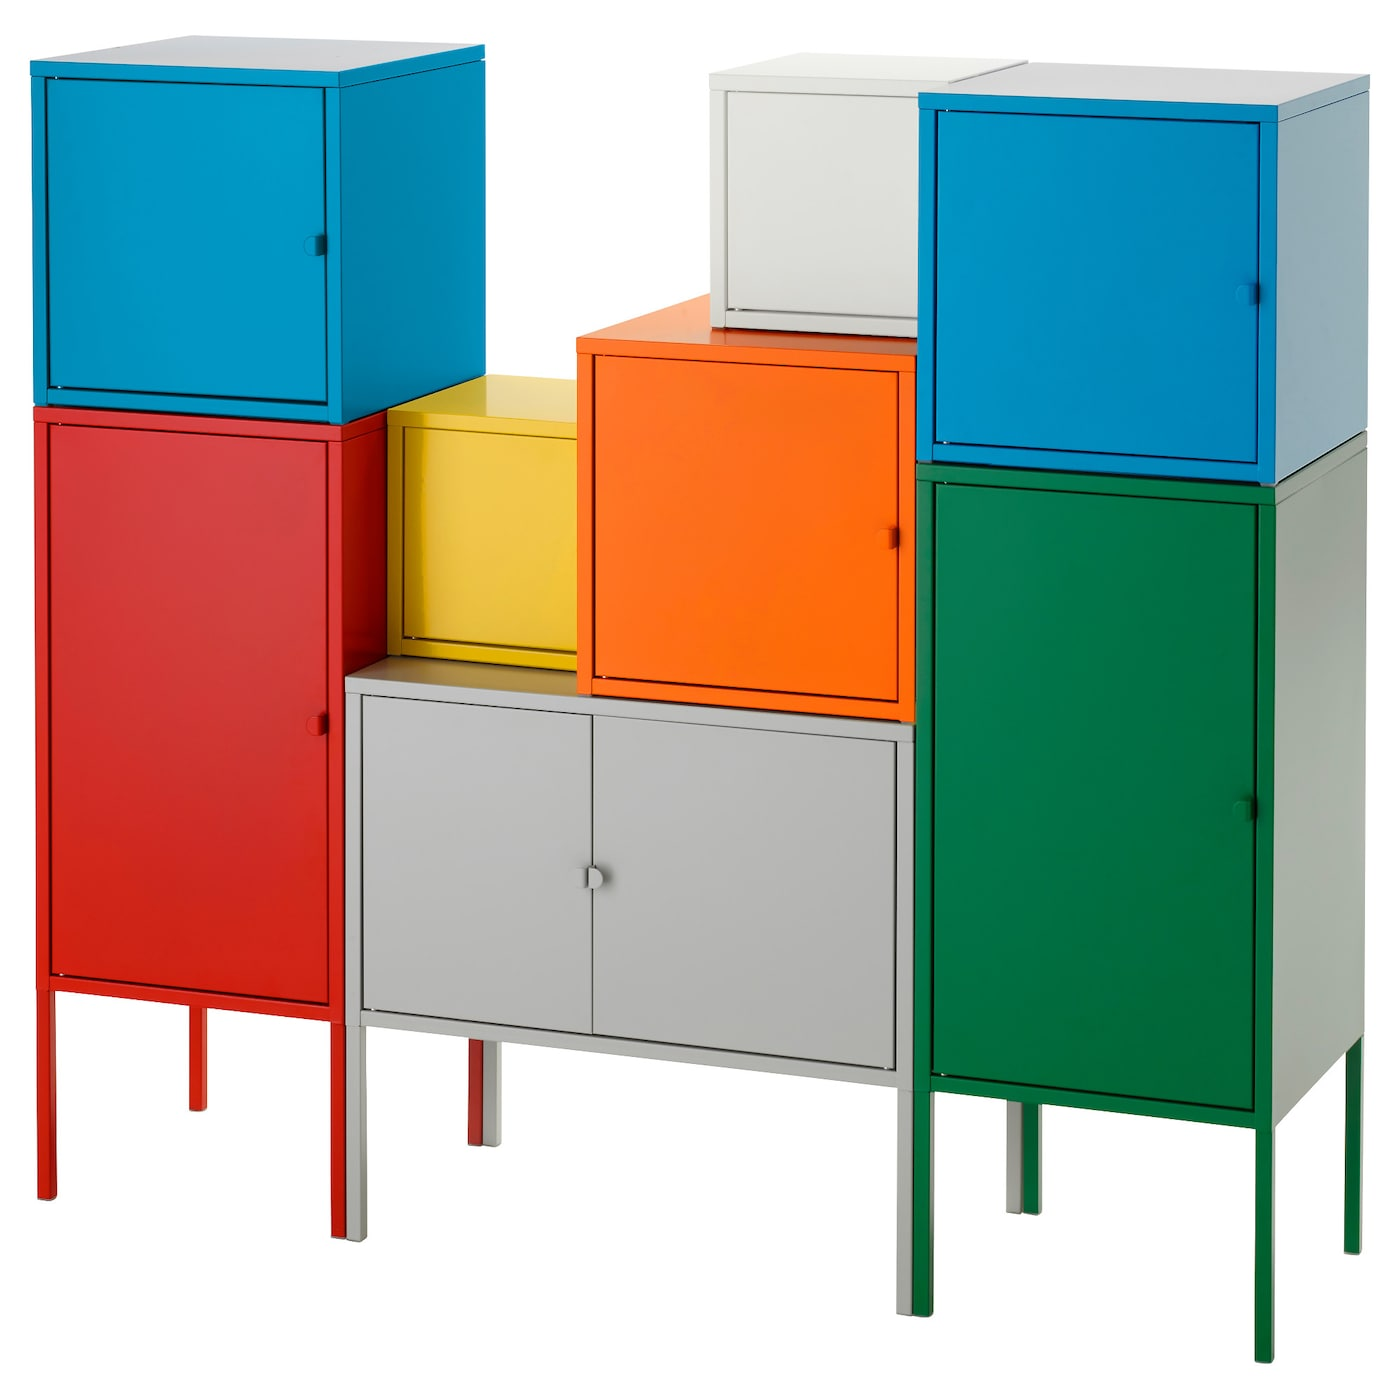 ikea storage furniture. plain storage ikea lixhult storage combination intended ikea storage furniture